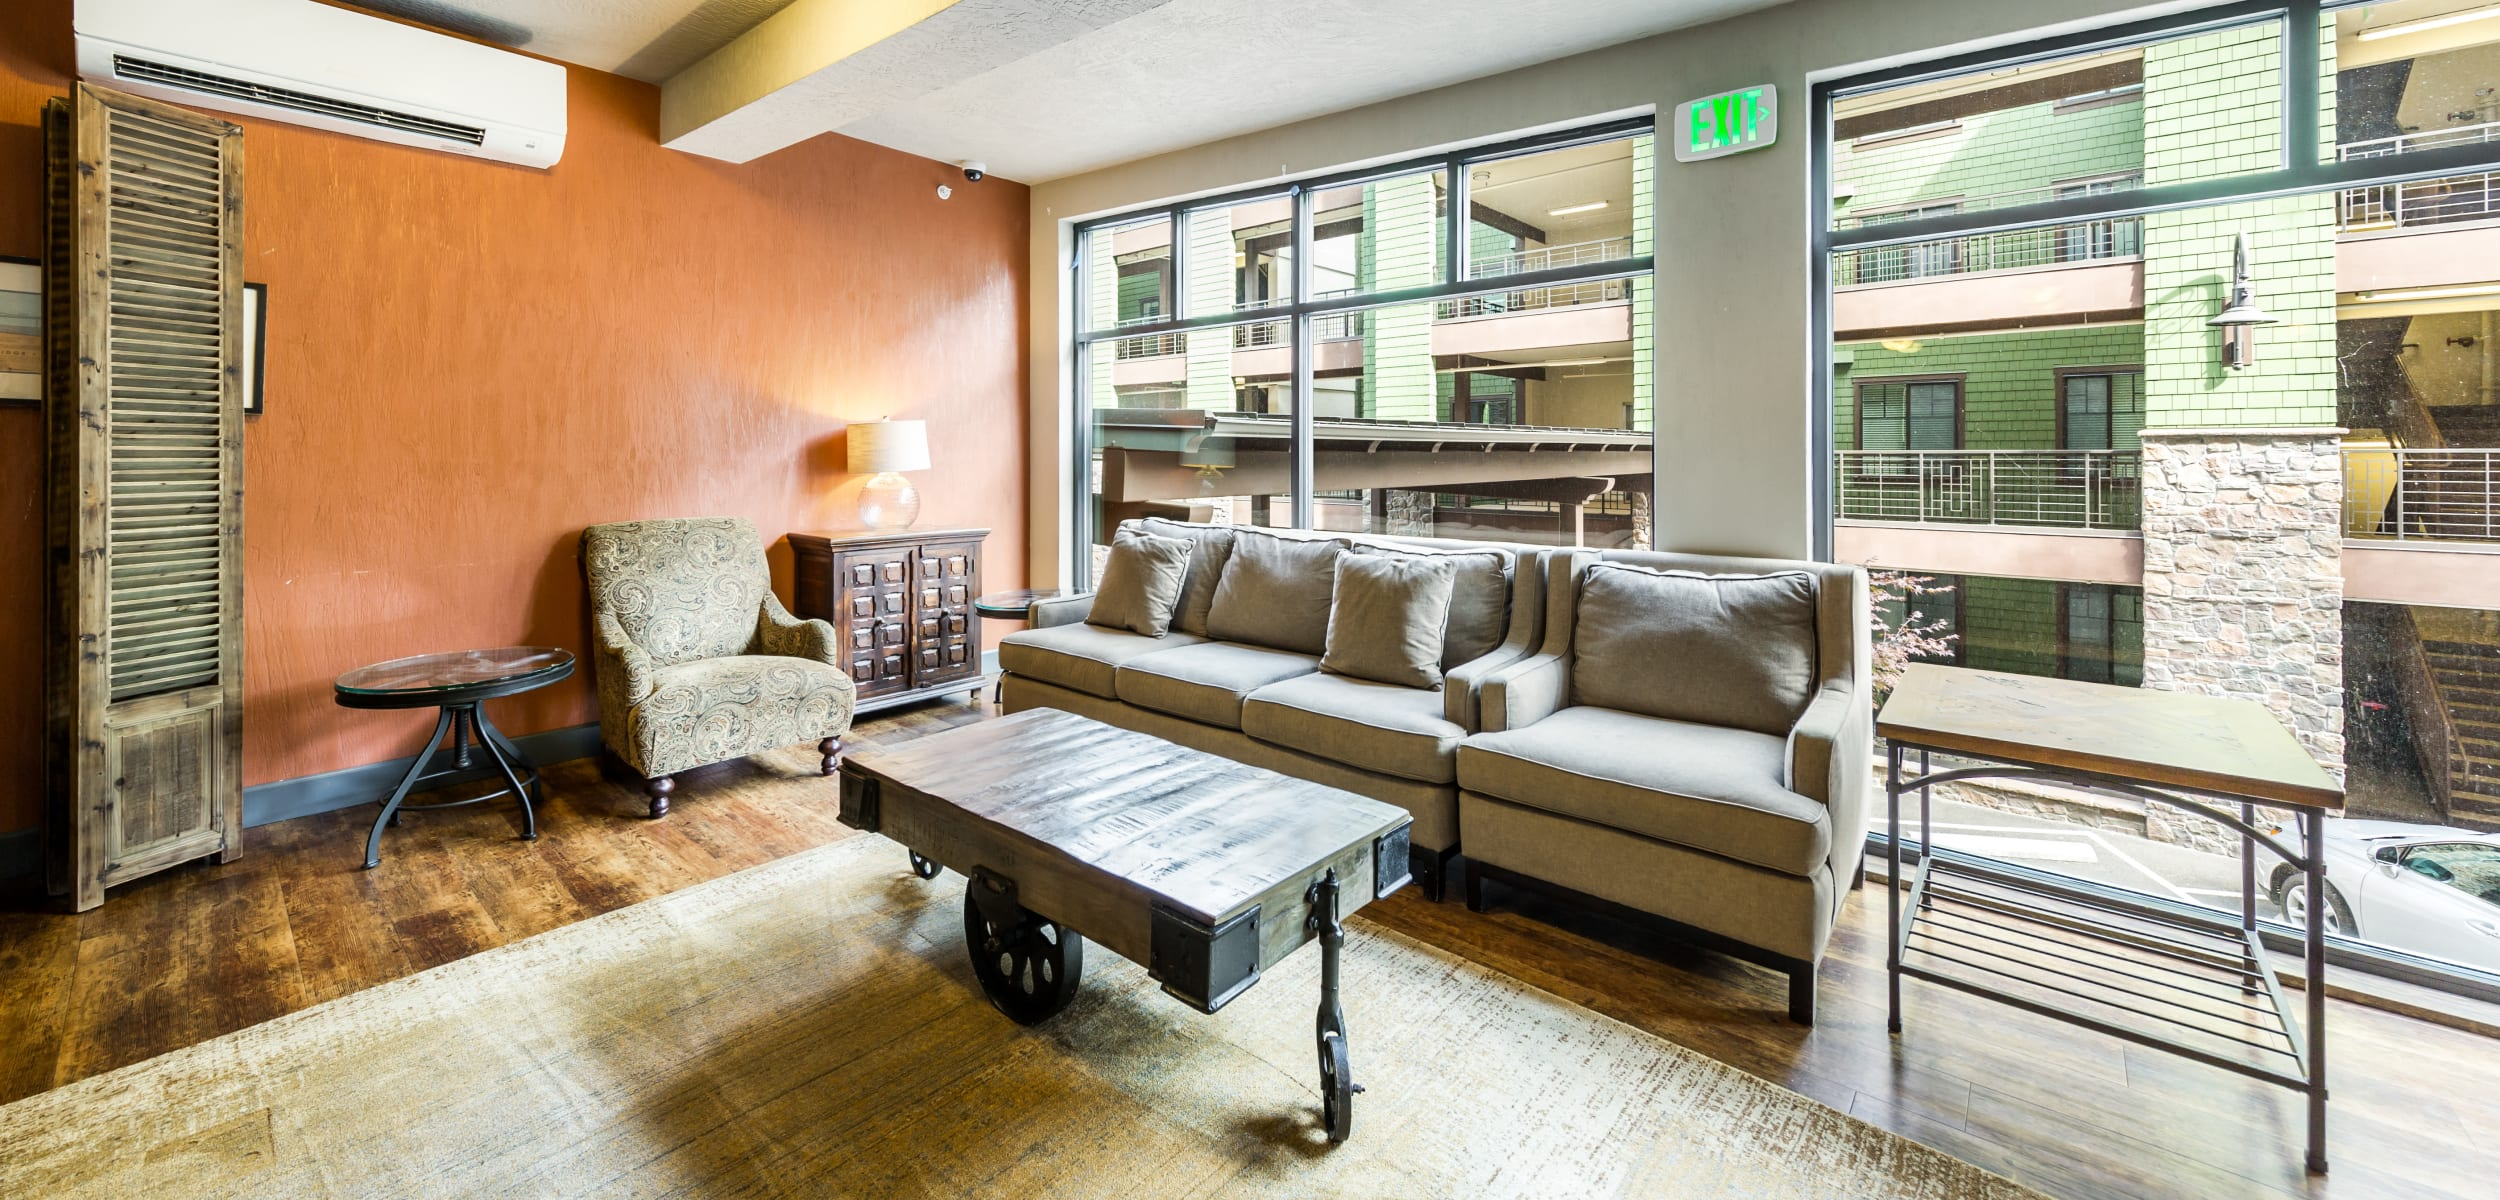 Comfy couch at Copperline at Point Ruston in Tacoma, Washington